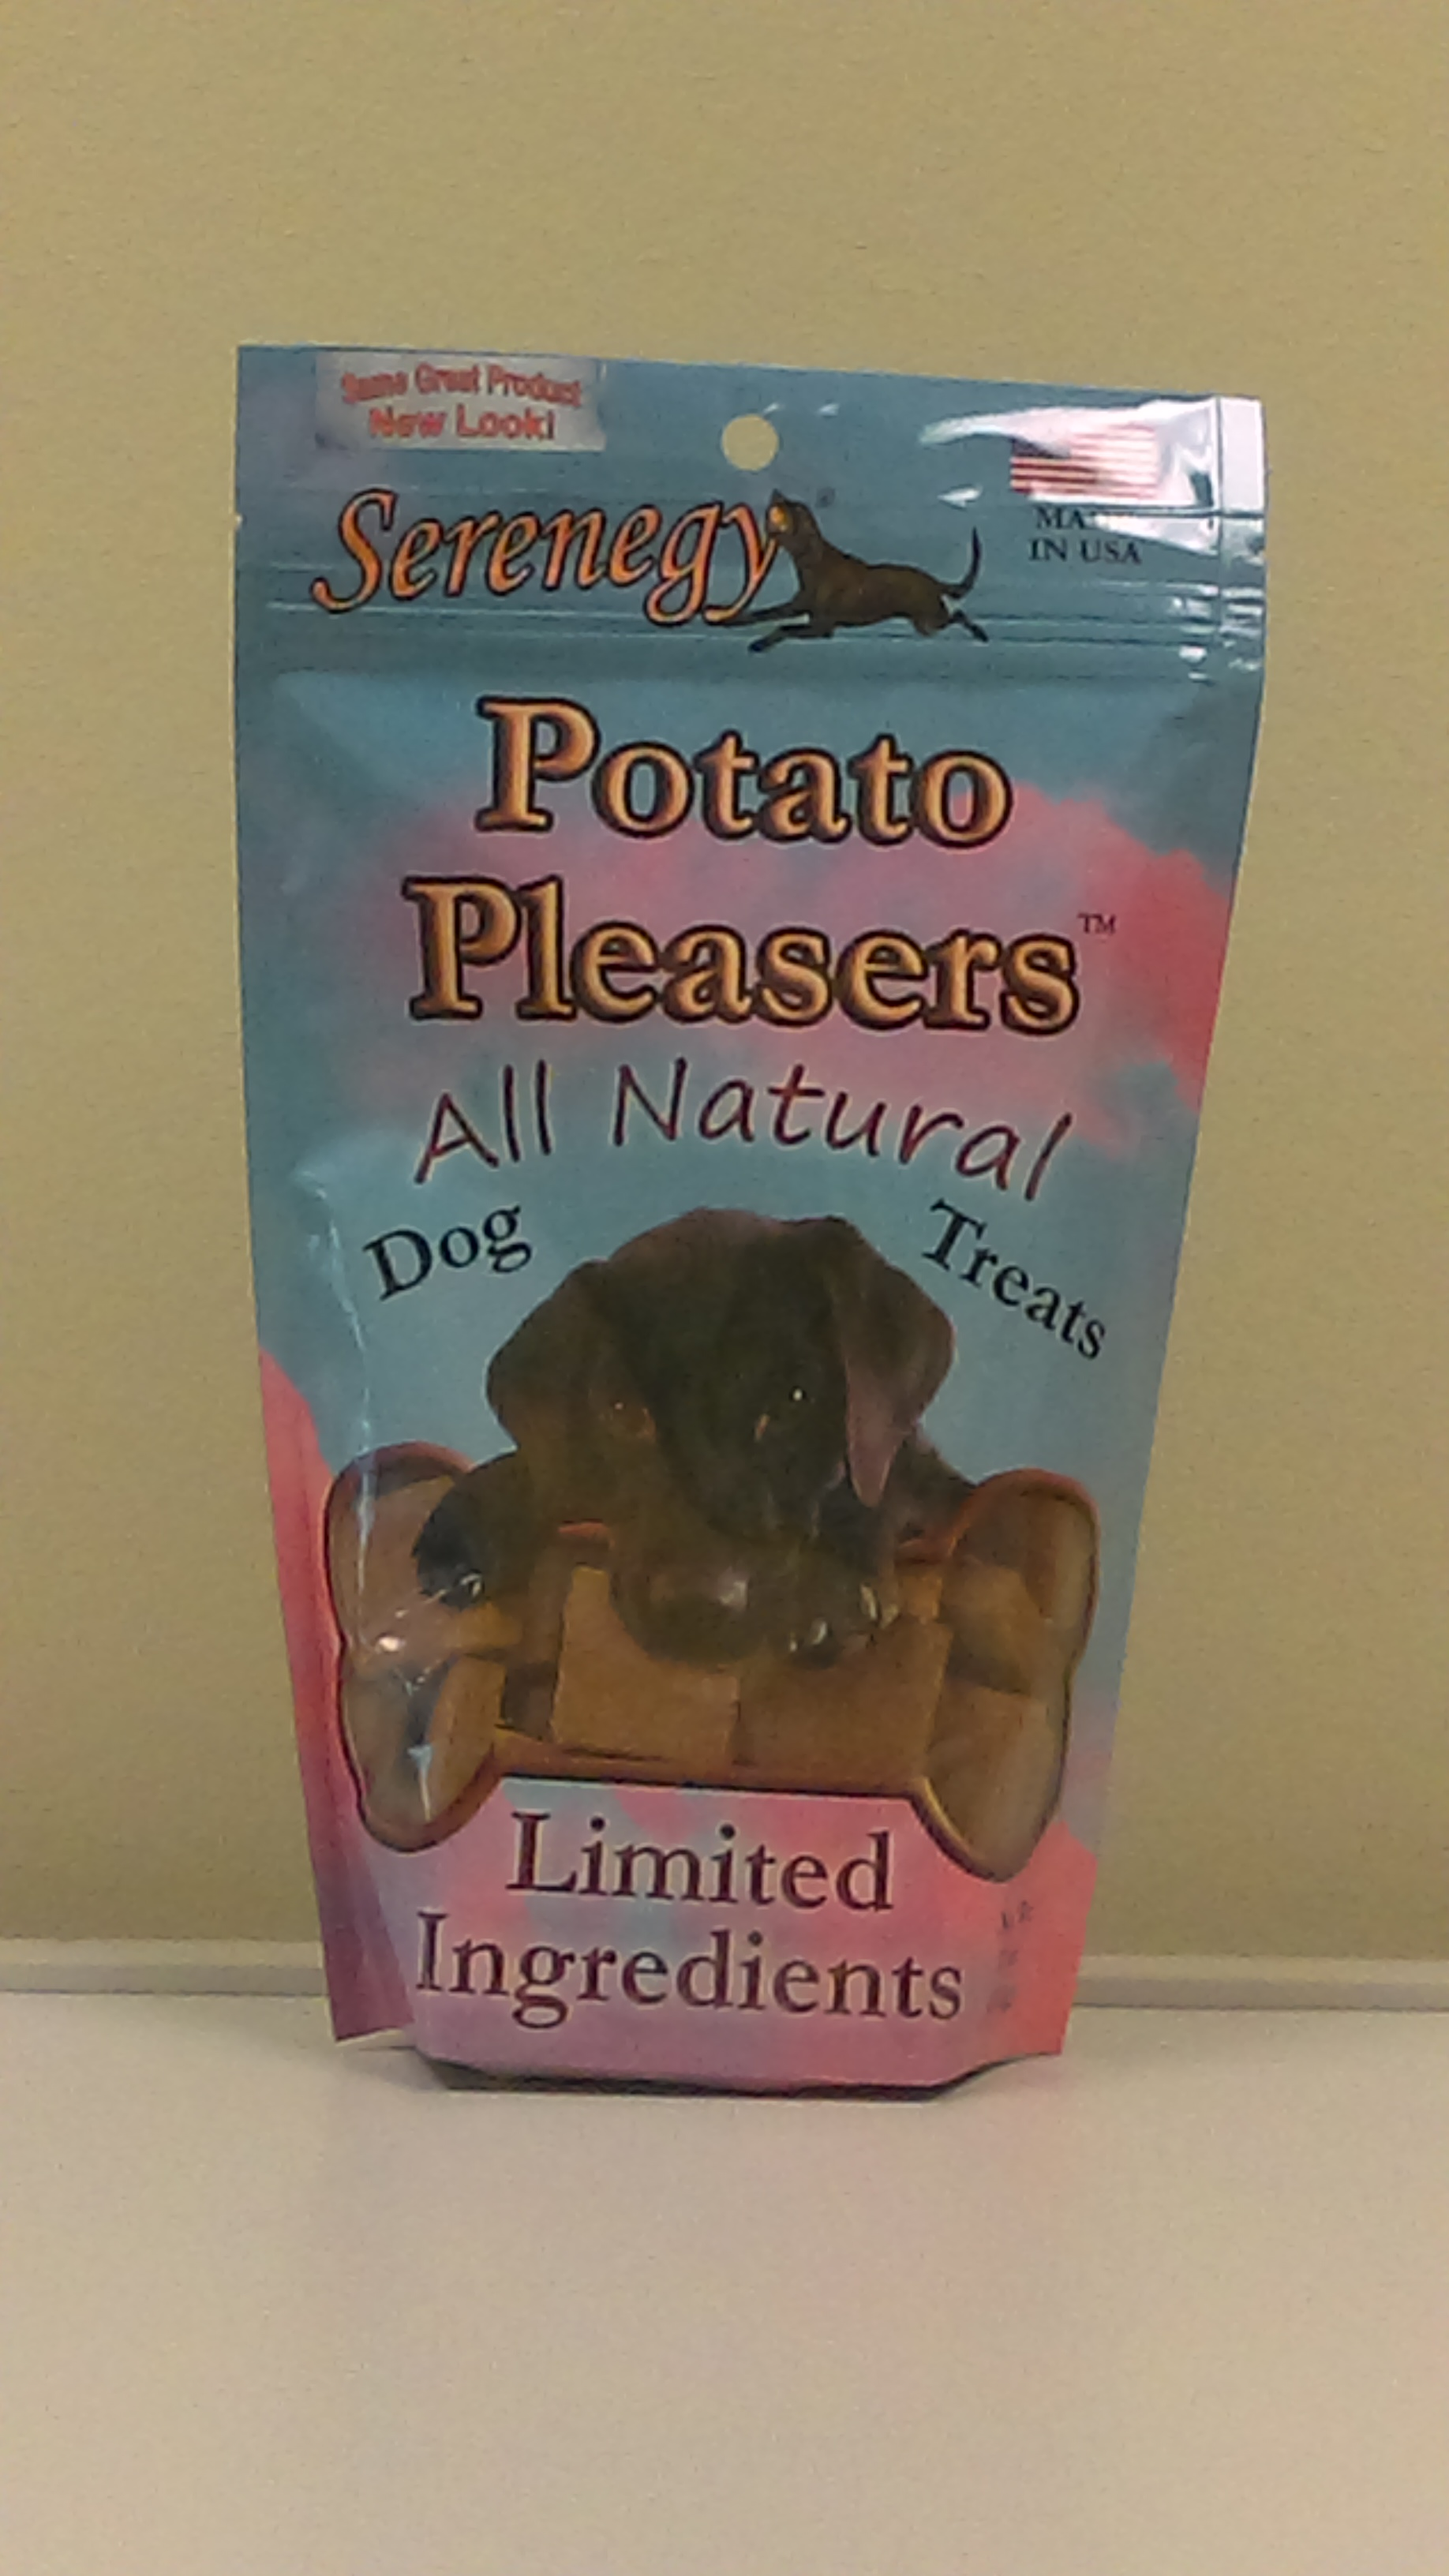 Dogs just love the Potato Pleasers!